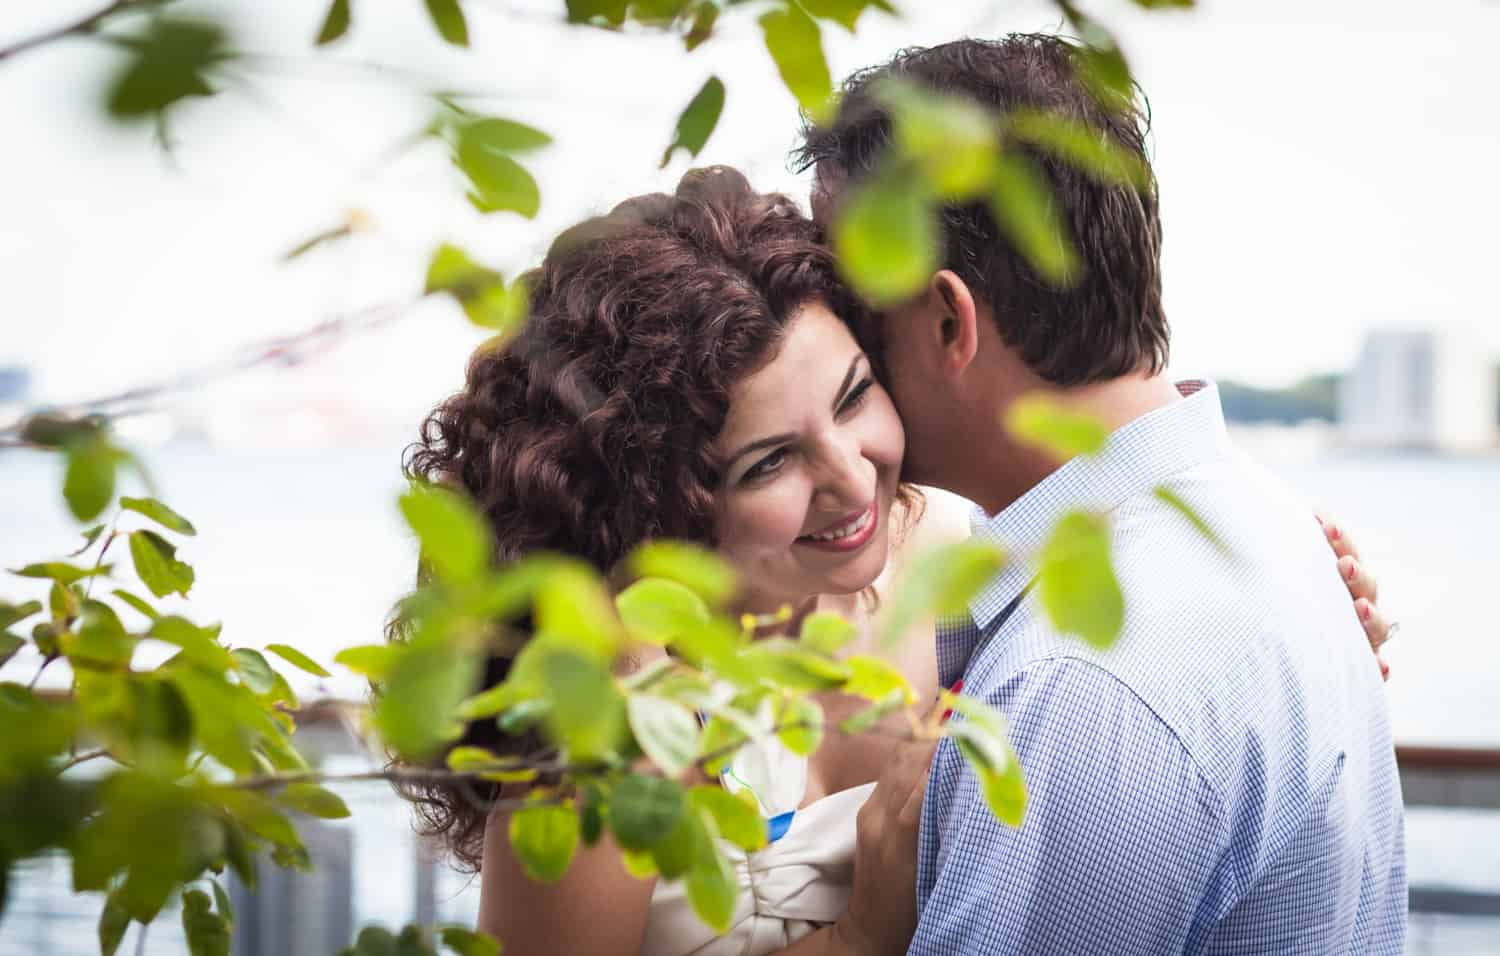 View through leaves of man and woman hugging